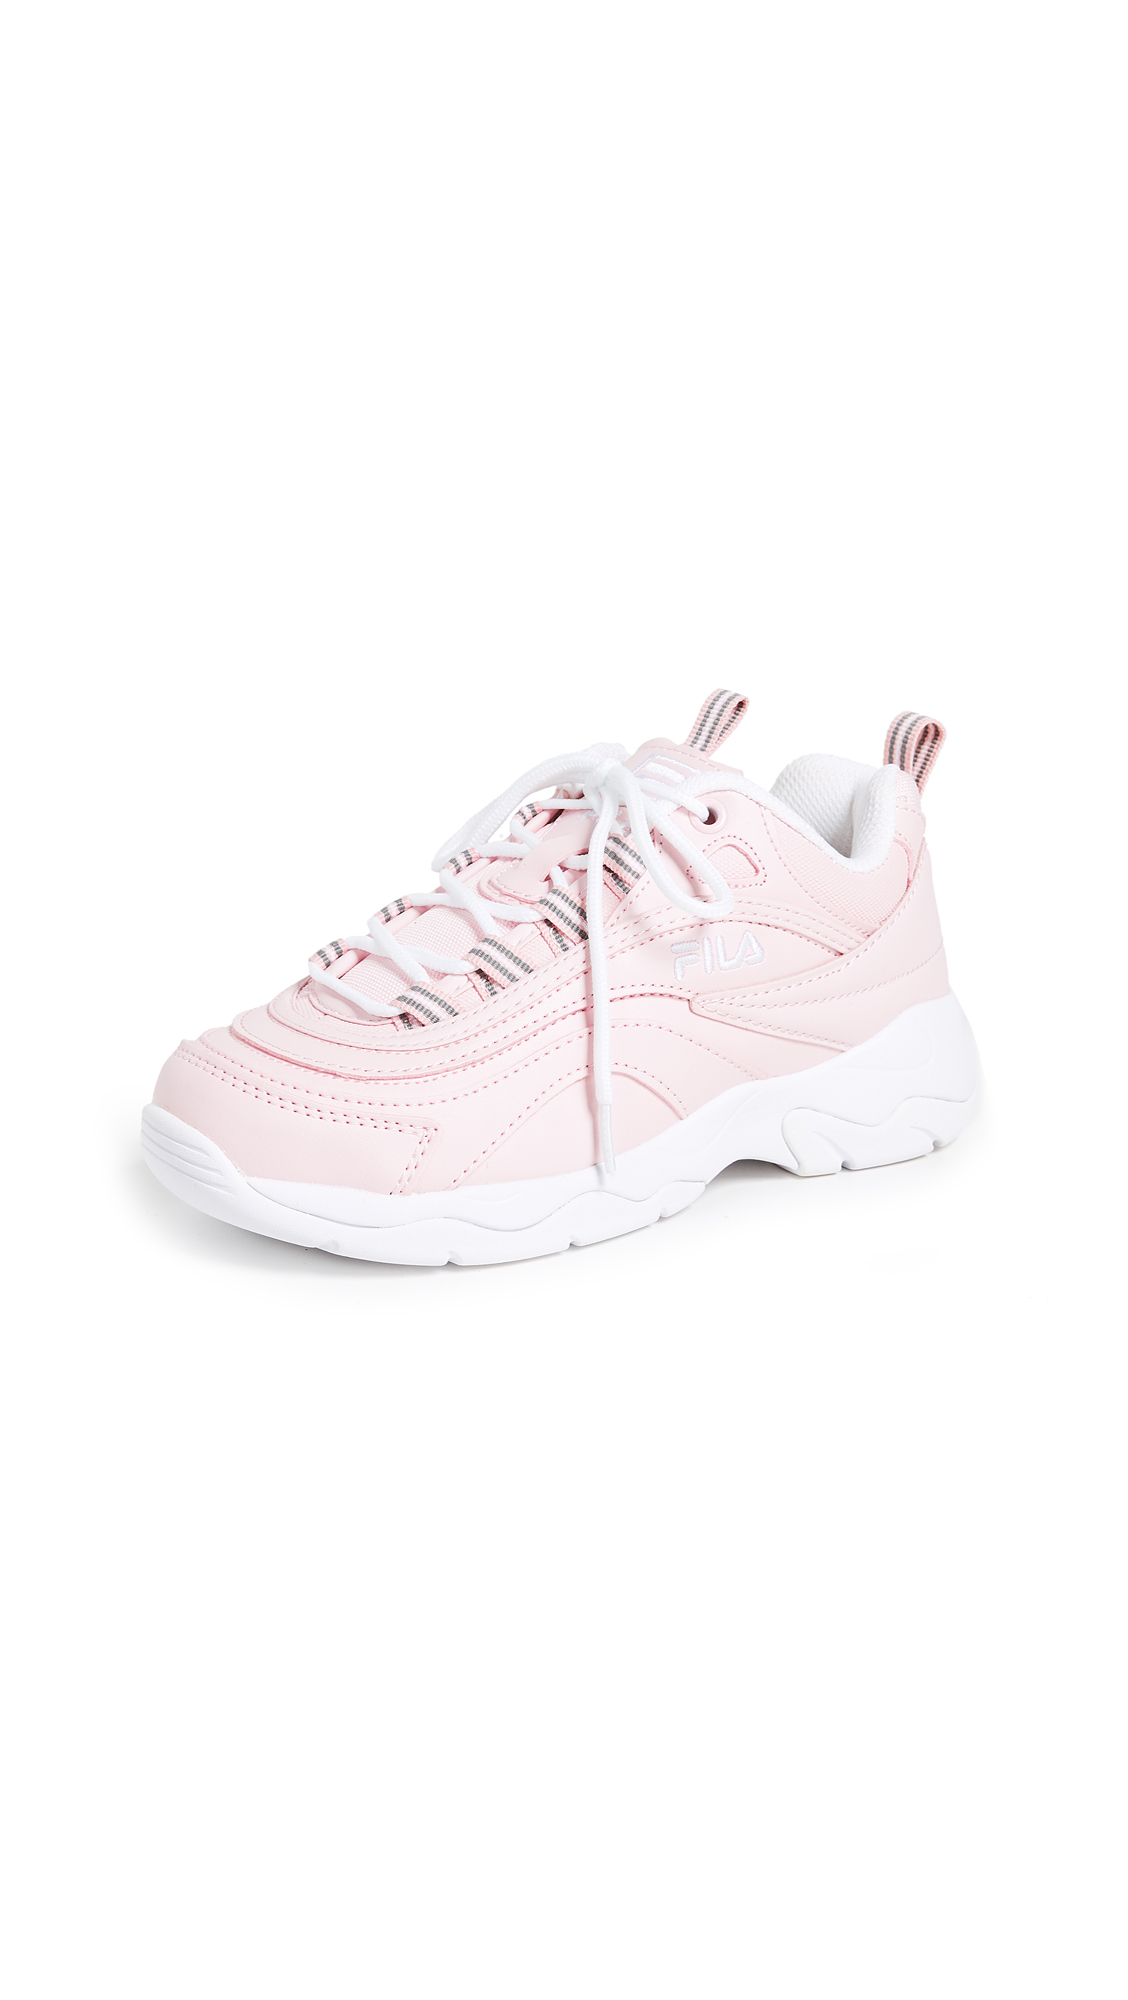 Fila Fila Ray Sneakers - Pink/White